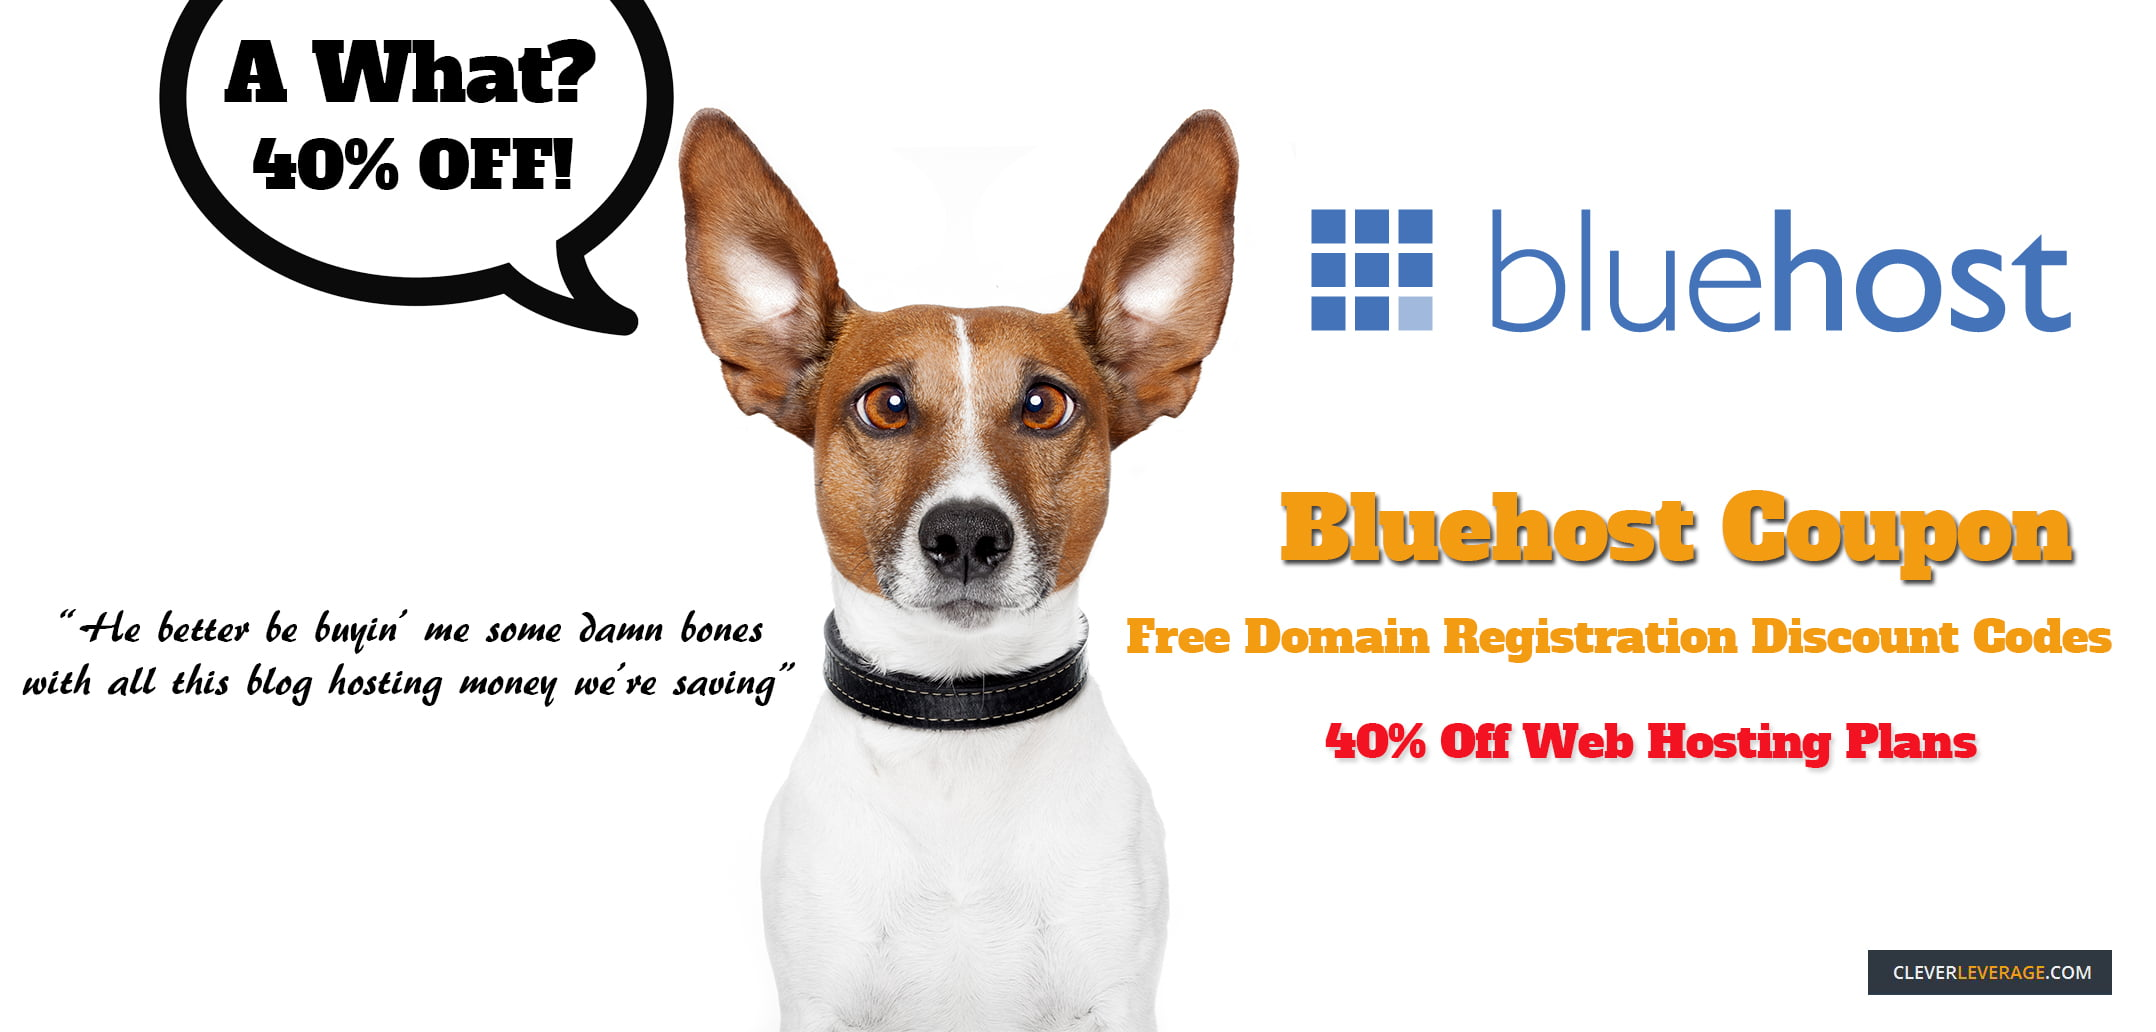 Bluehost Coupon Image With Dog Promo